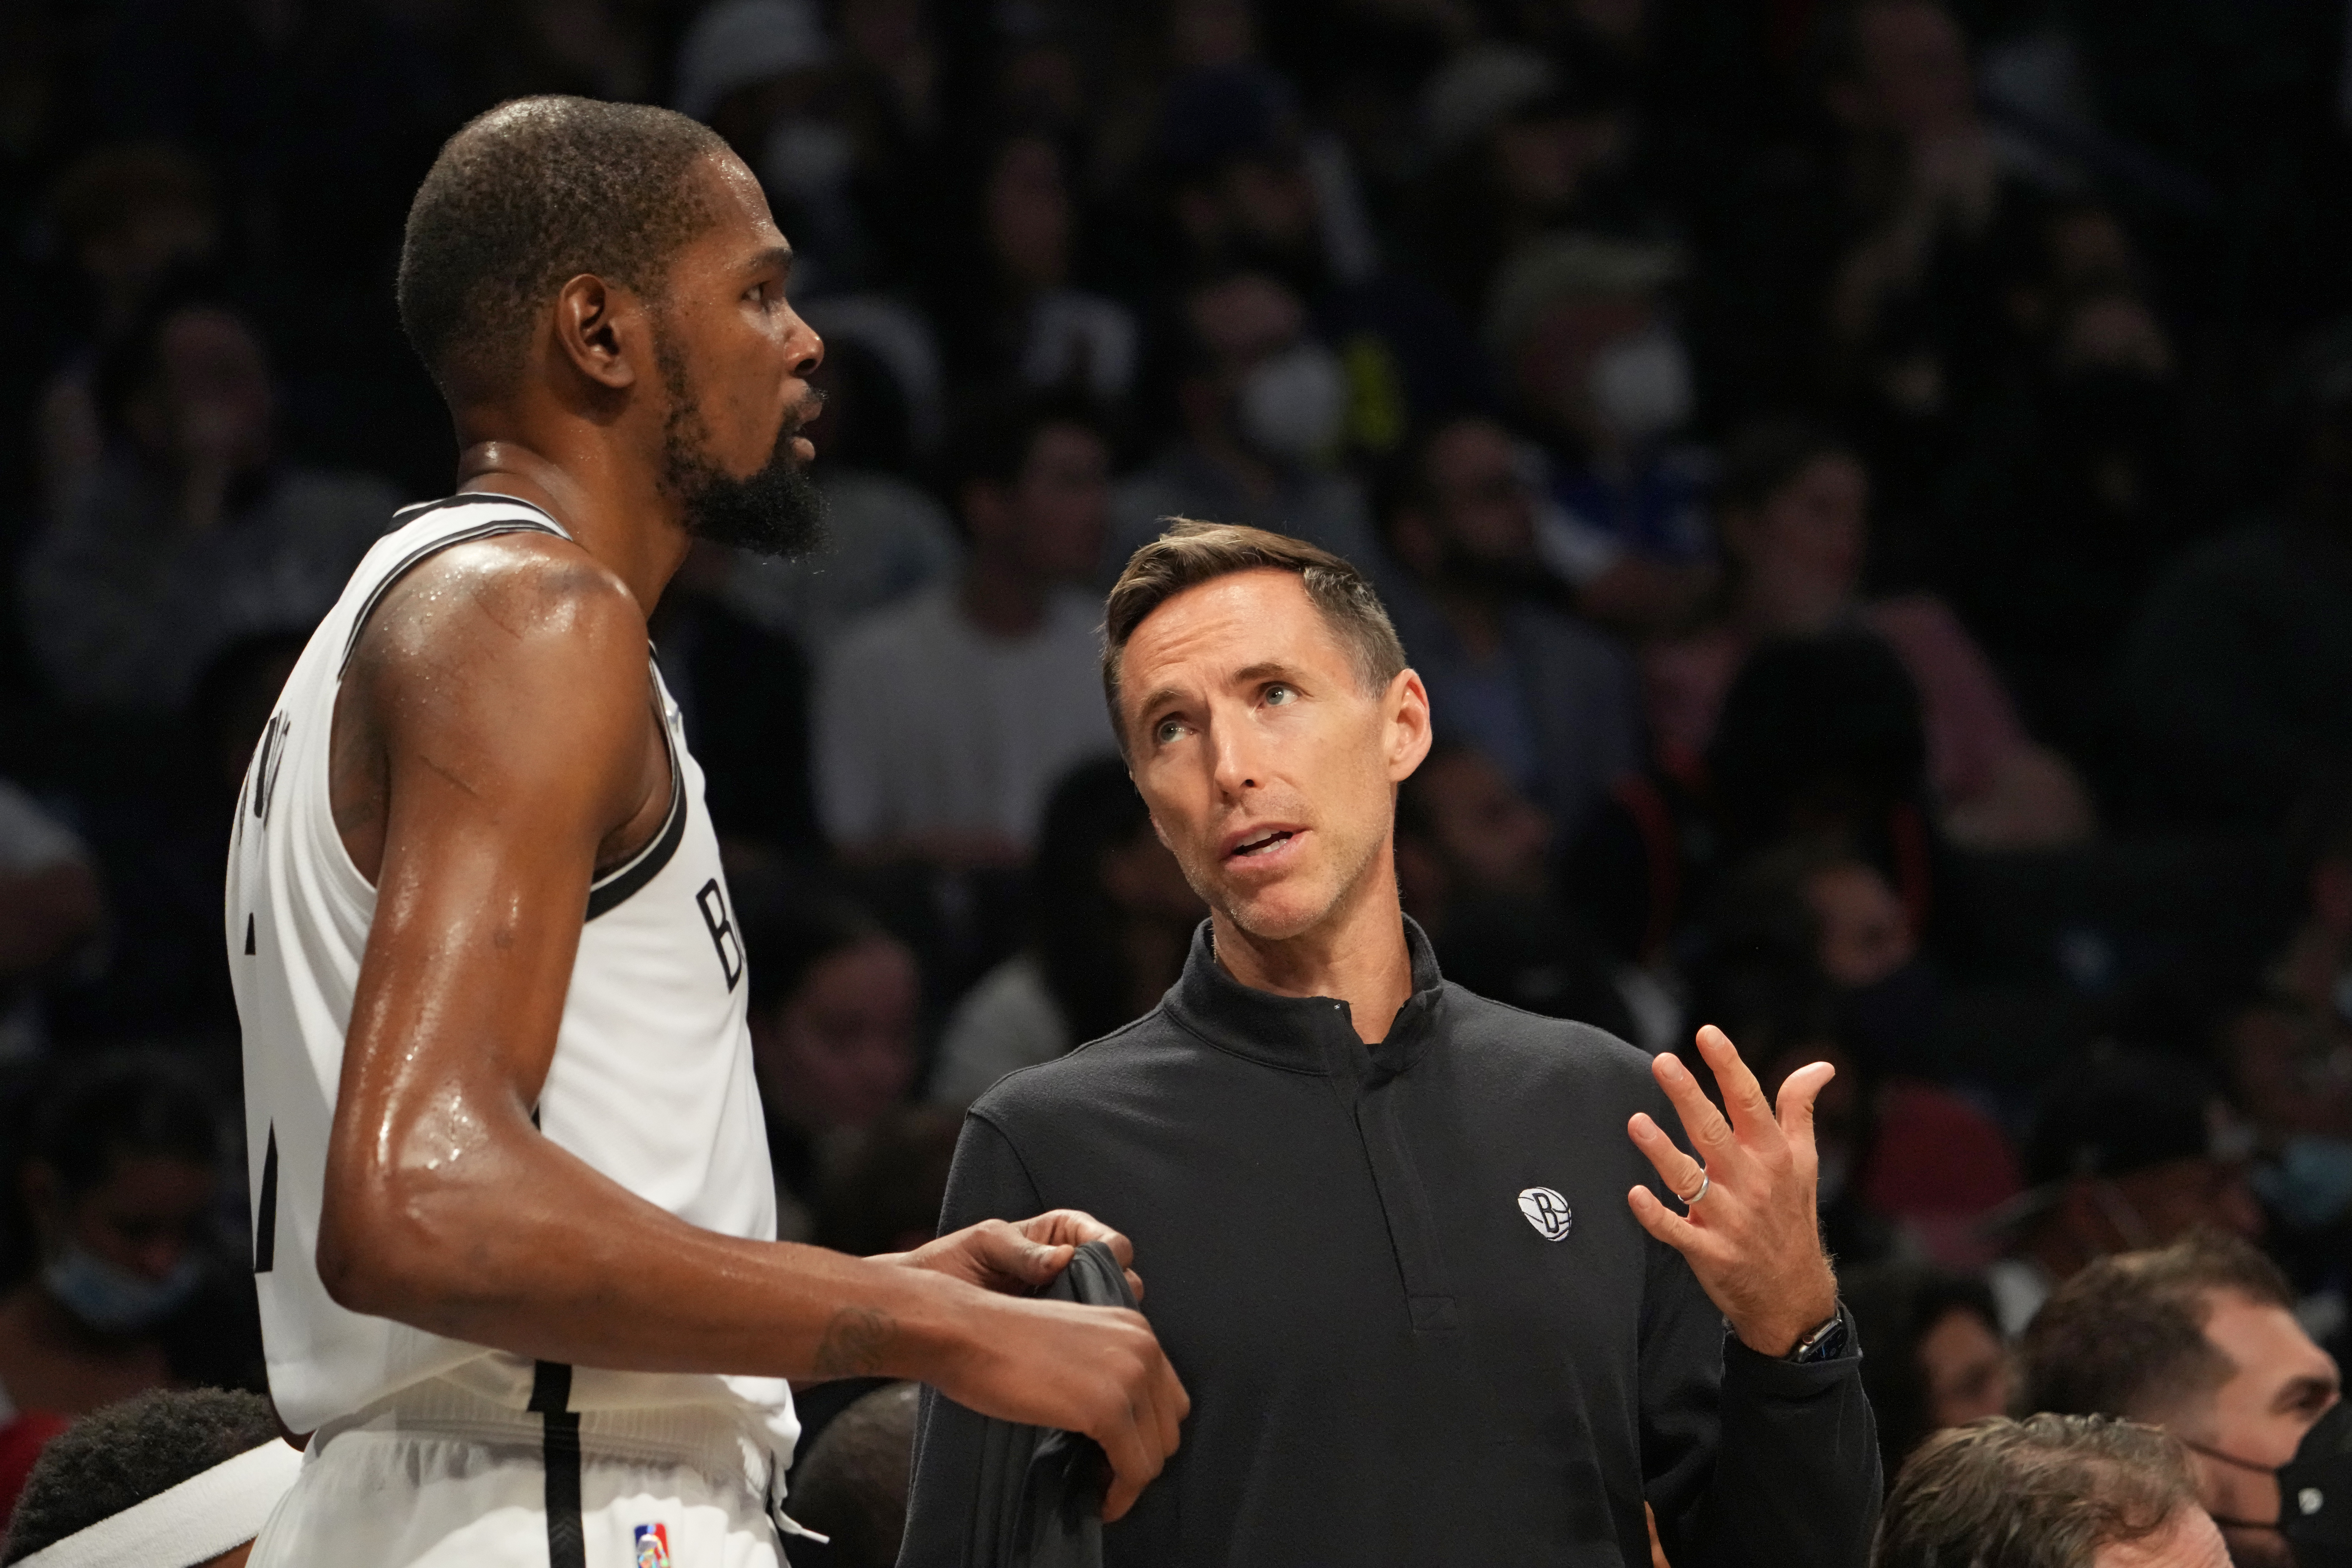 Kevin Durant #7 of the Brooklyn Nets and Head Coach Steve Nash of the Brooklyn Nets talk during a preseason game on October 14, 2021 at Barclays Center in Brooklyn, New York.